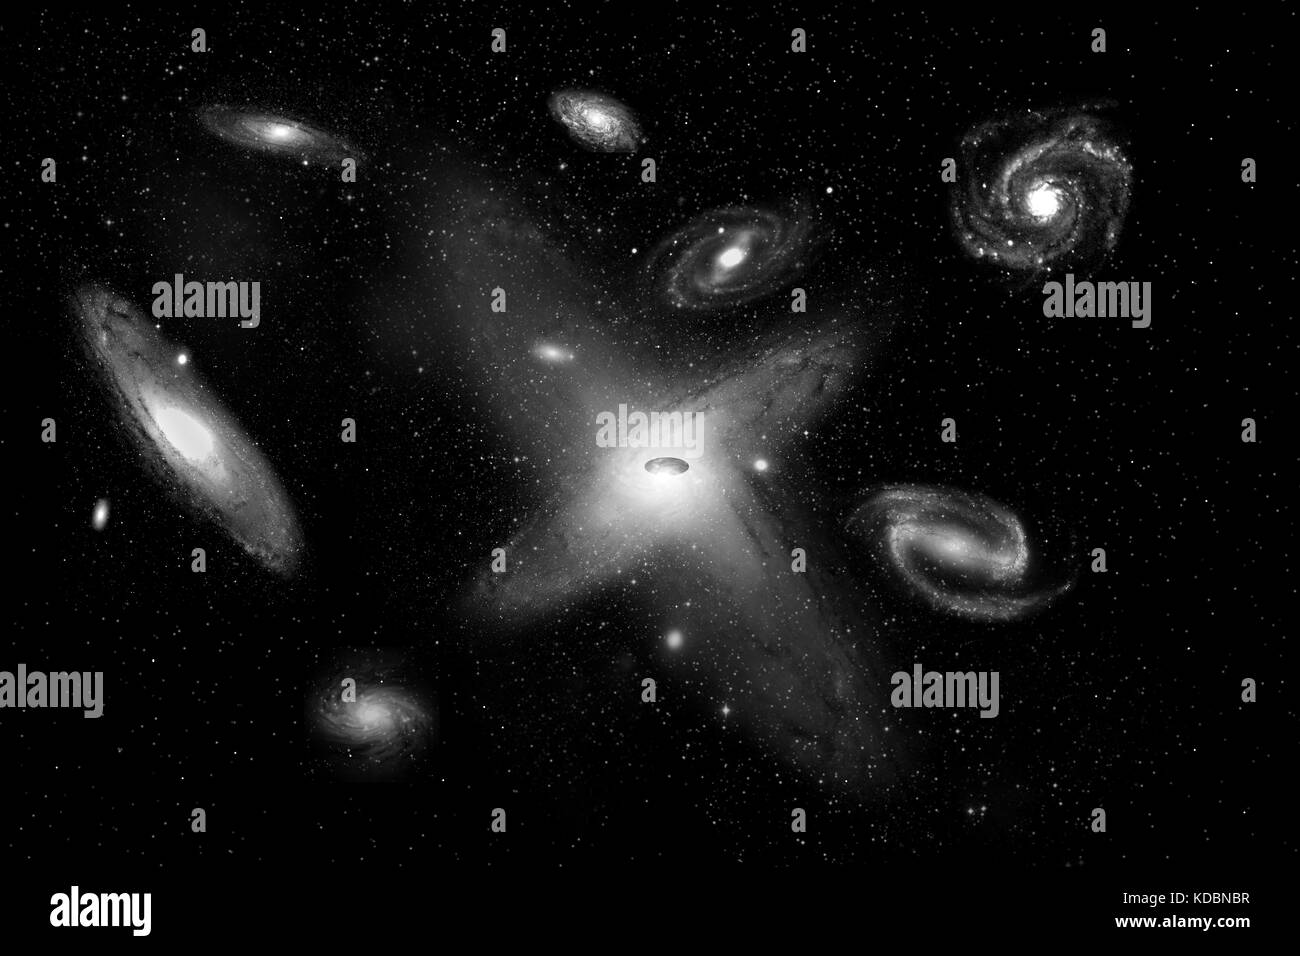 Colliding Galaxies Forming A Supermassive Black Hole. - Stock Image